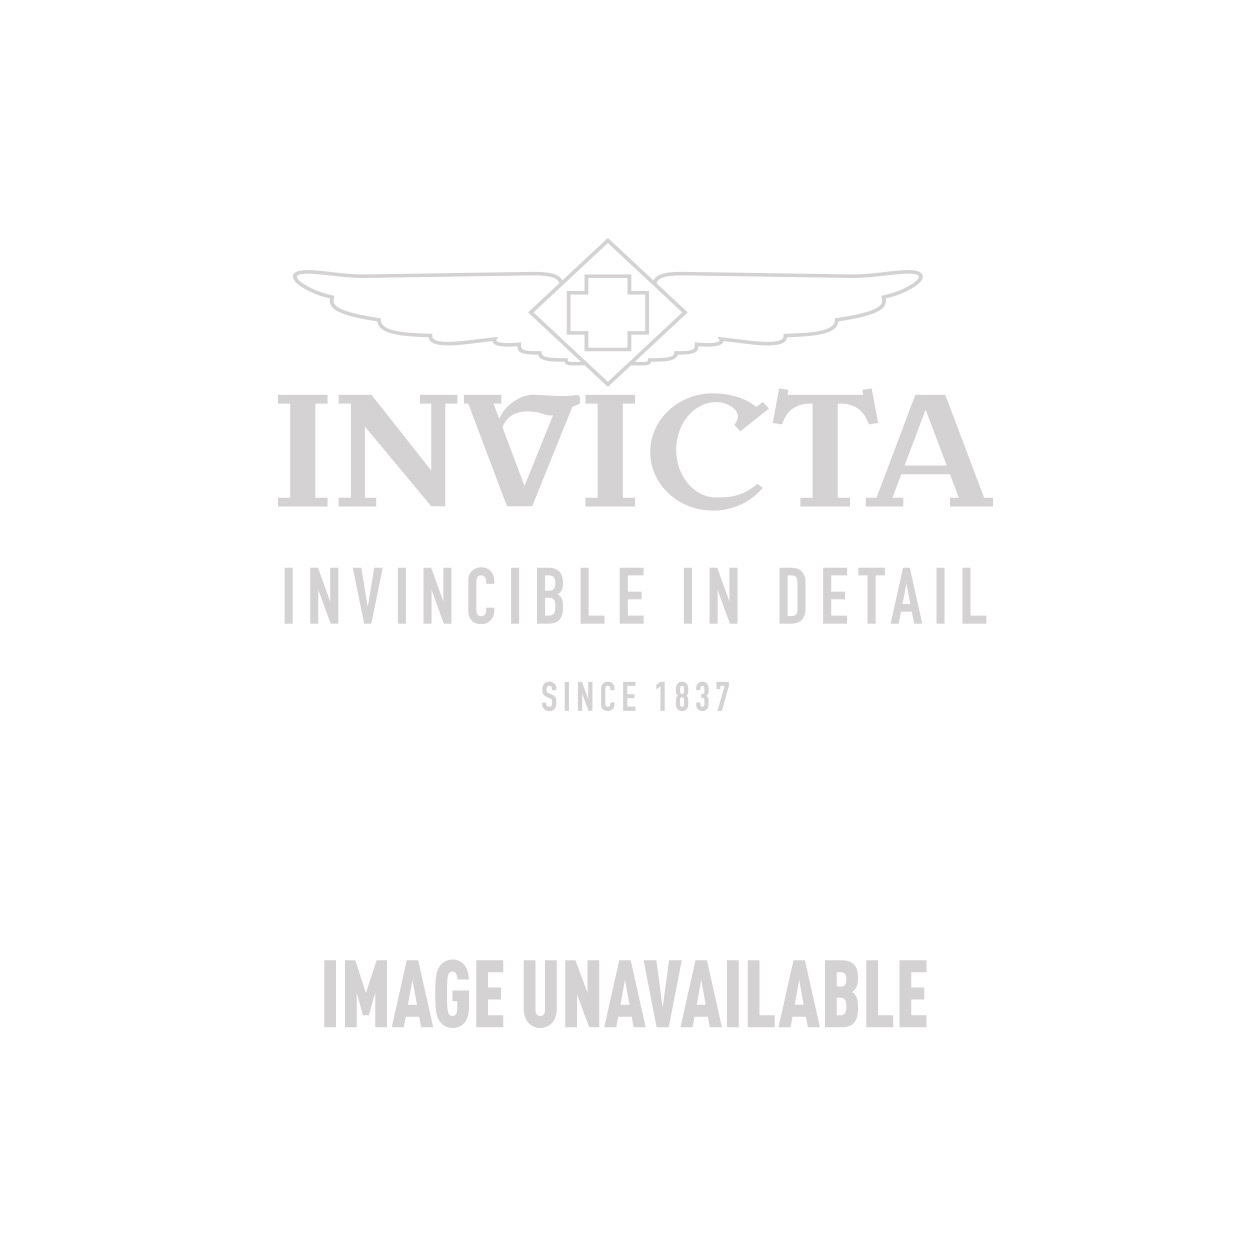 Invicta Aviator Quartz Watch - Gold case with Gold tone Stainless Steel band - Model 18854